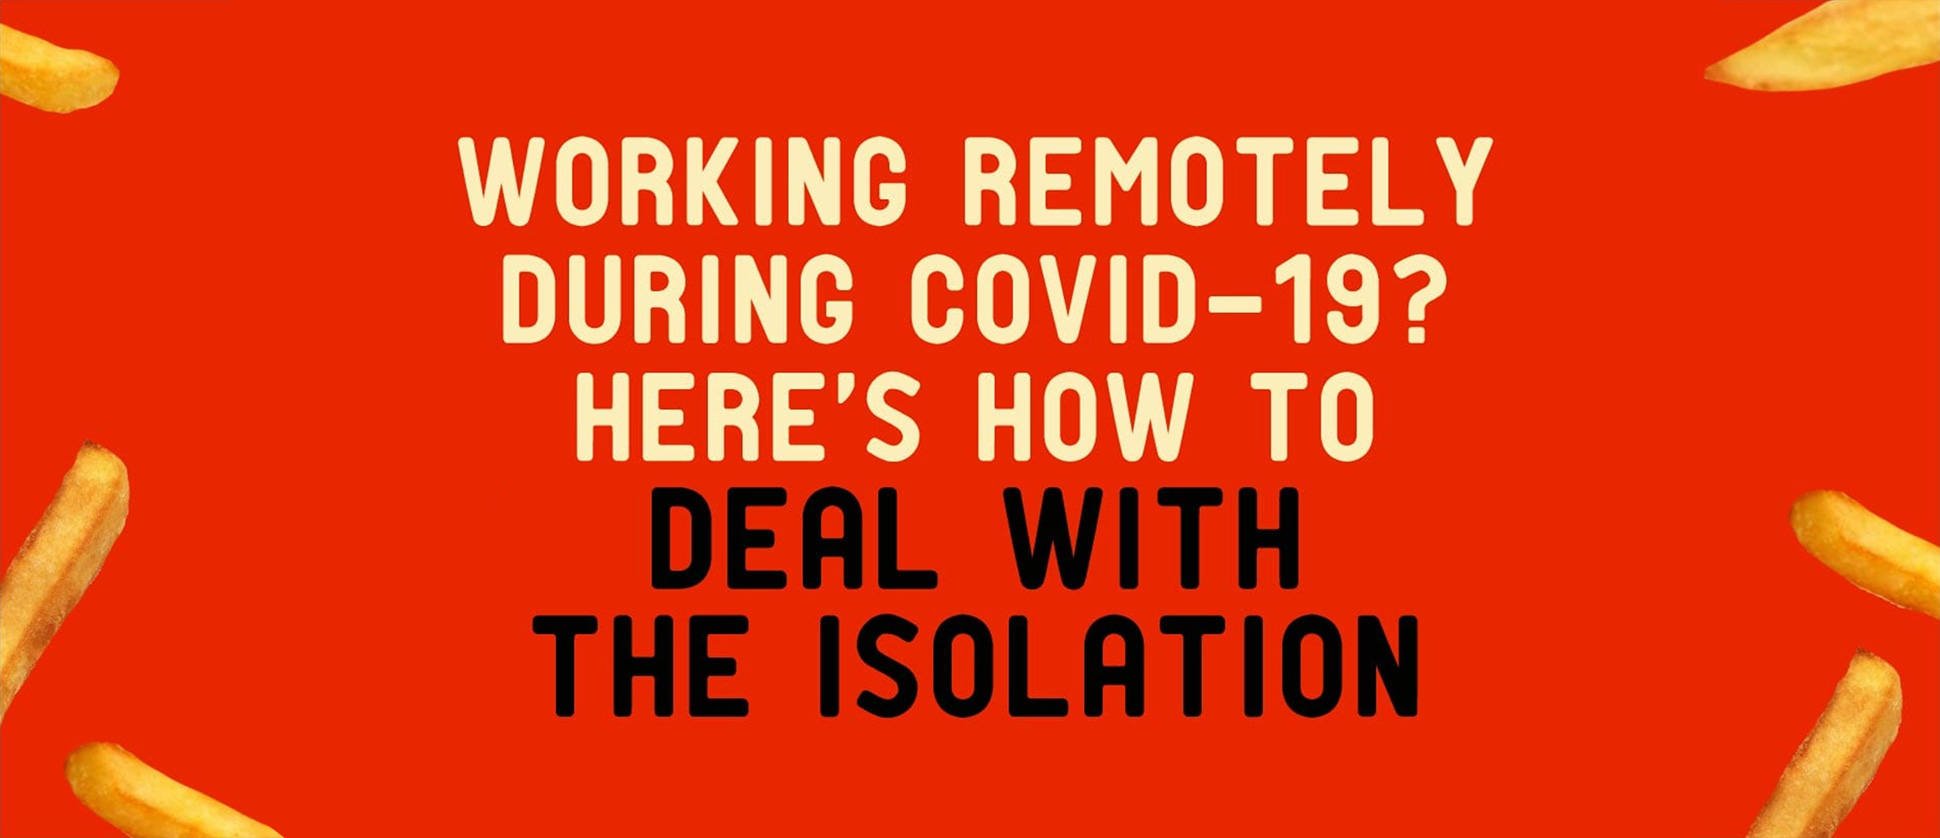 How to deal with isolation when working remotely during COVID-19 [Infographic]